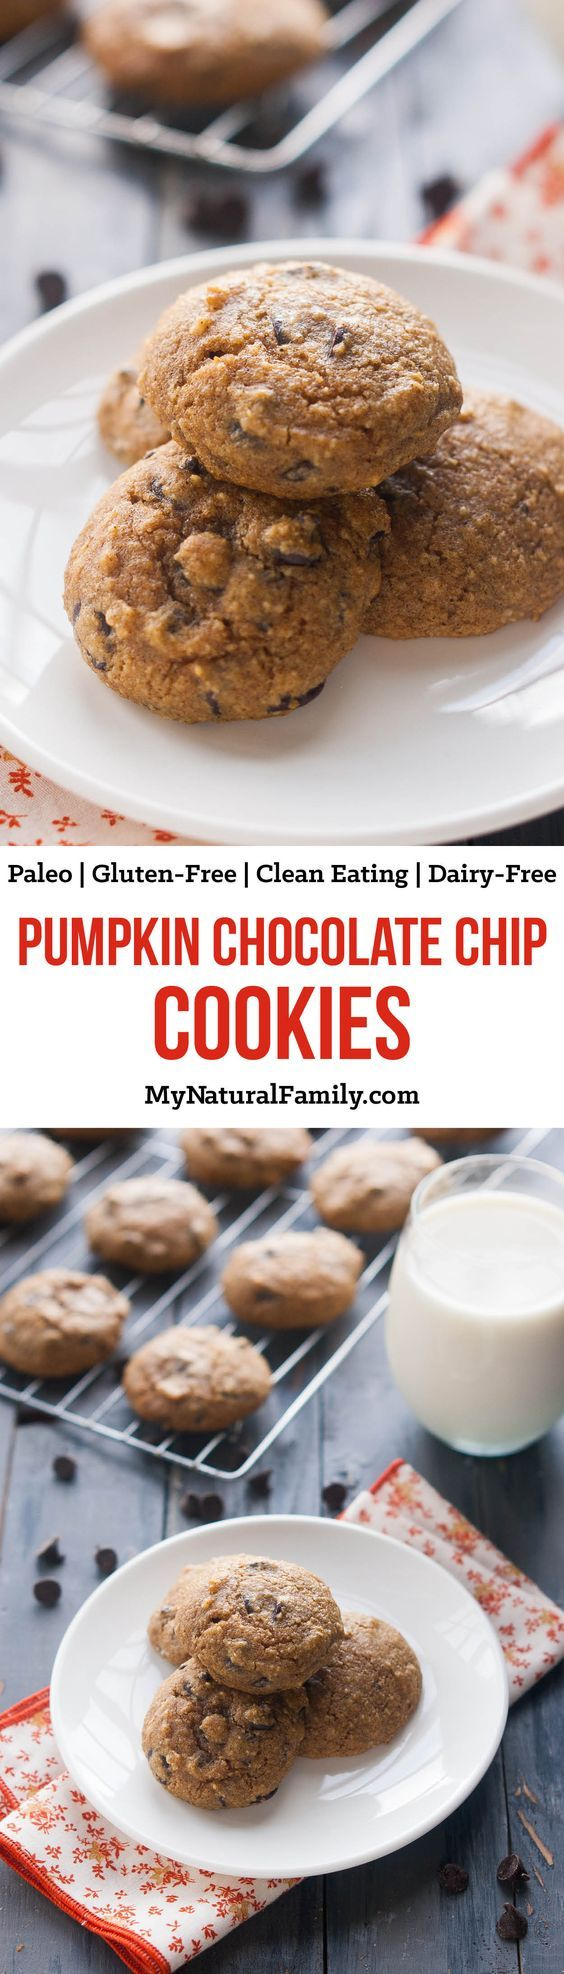 paleo-pumpkin-cookies-with-chocolate-chips-recipe